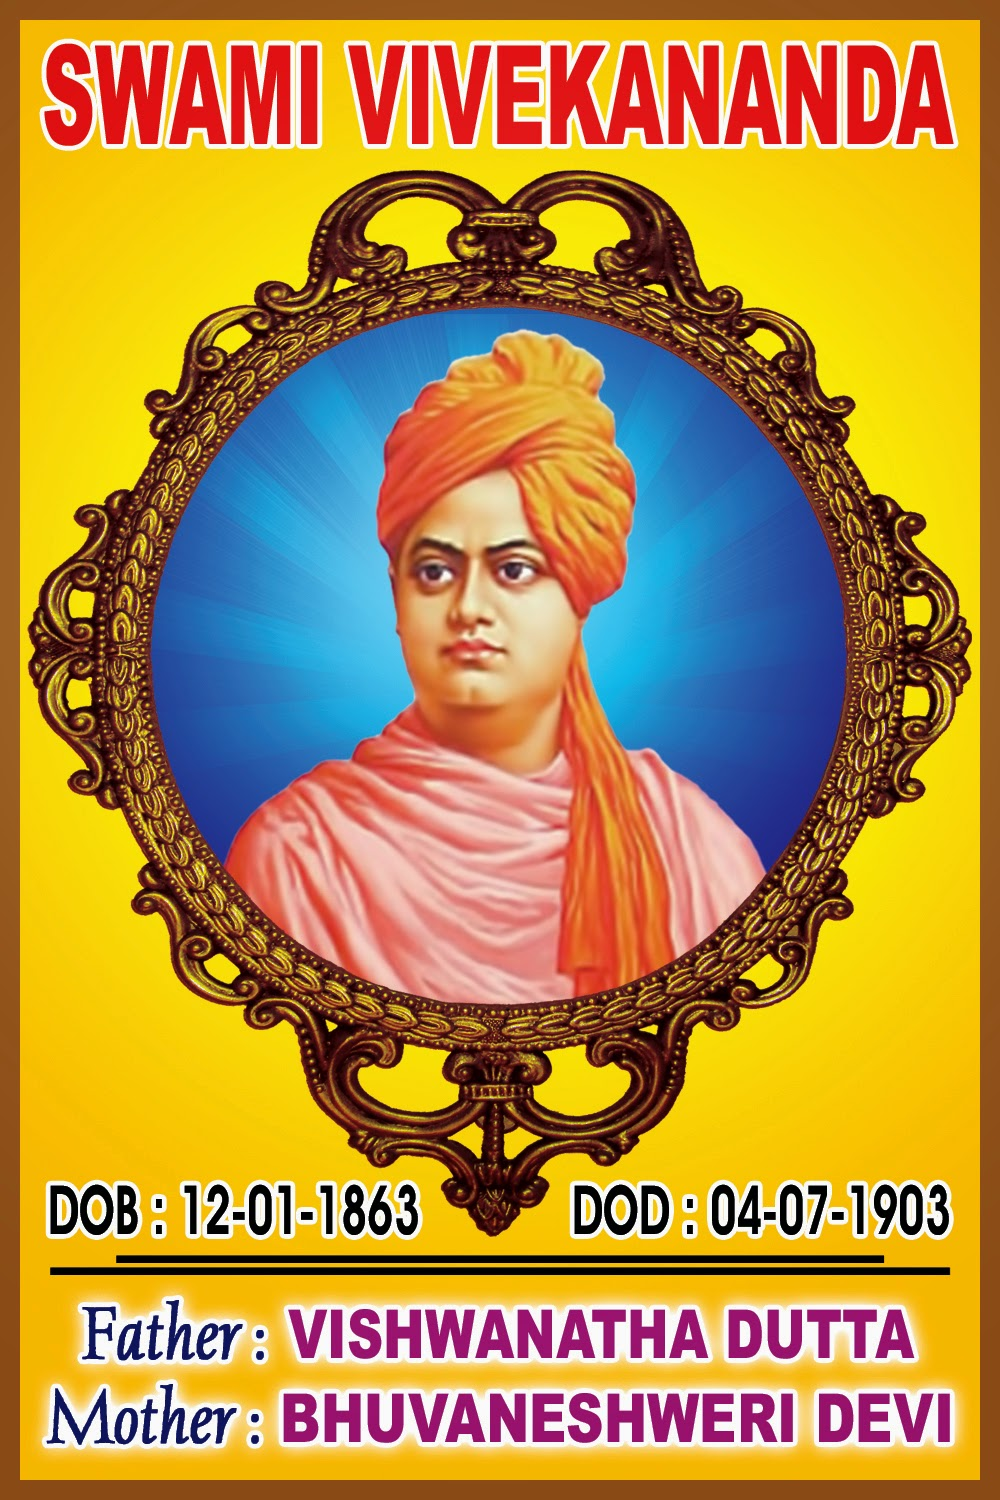 freedom-fighter-swami-vivekananda-image-with-names-naveengfx.com